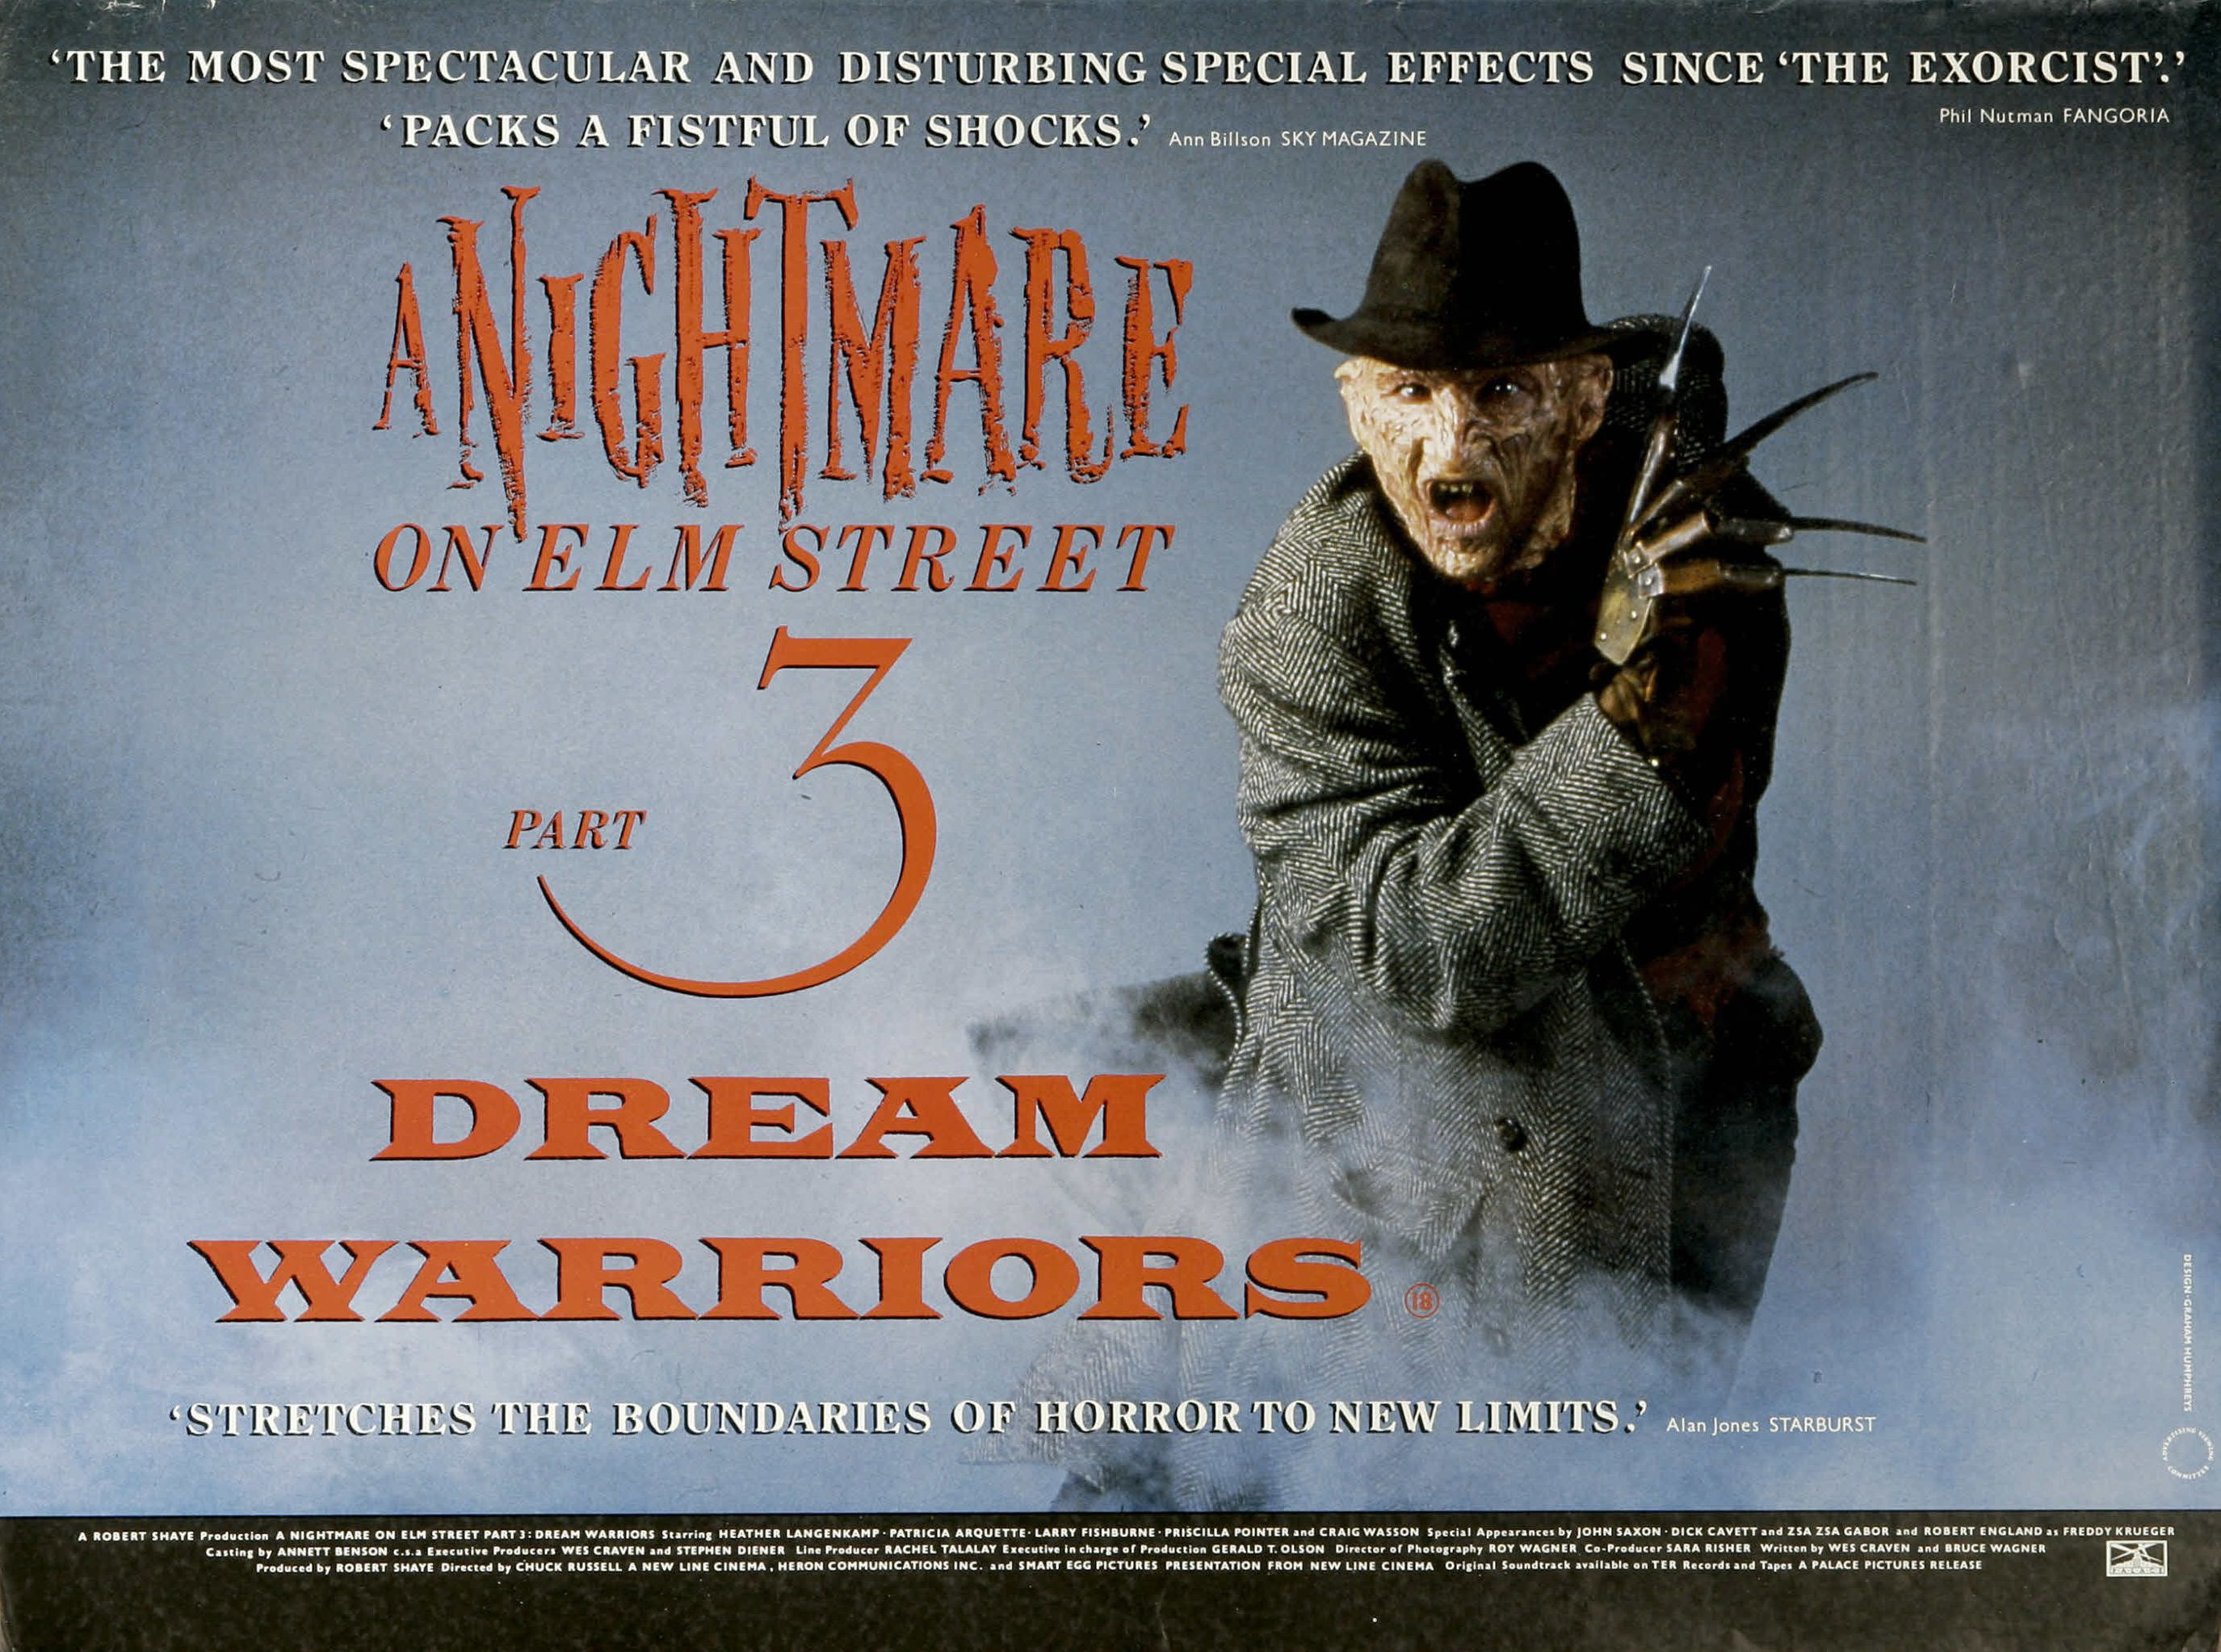 Nightmare On Elm Street 3 – Dream Warrios:  L'uomo nero si chiama Krueger